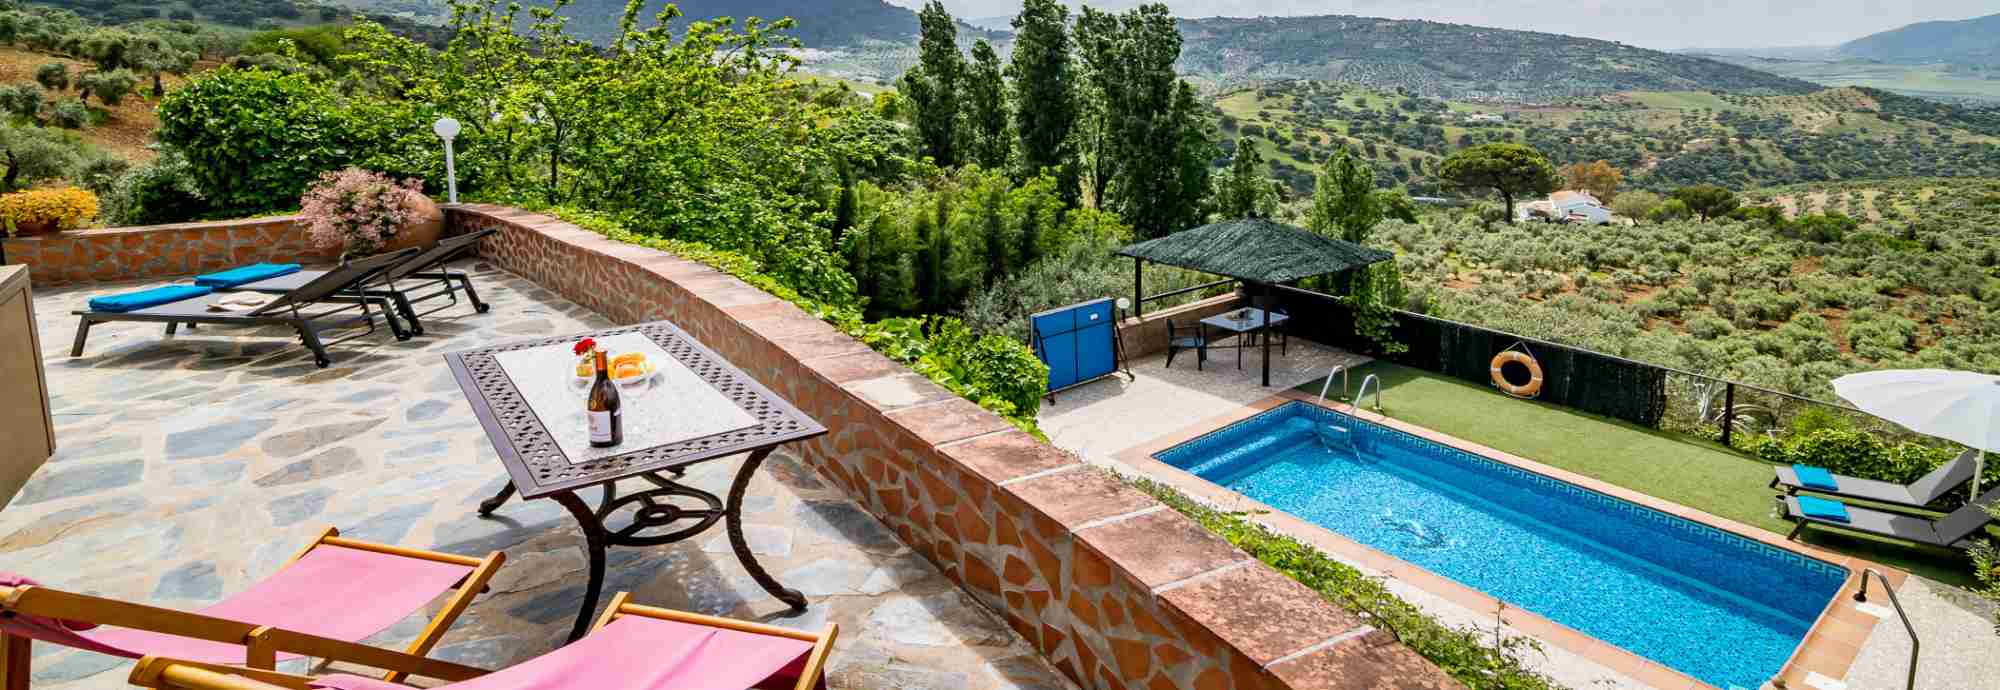 Rural Ronda villa for a couple deserving some rest & relaxation